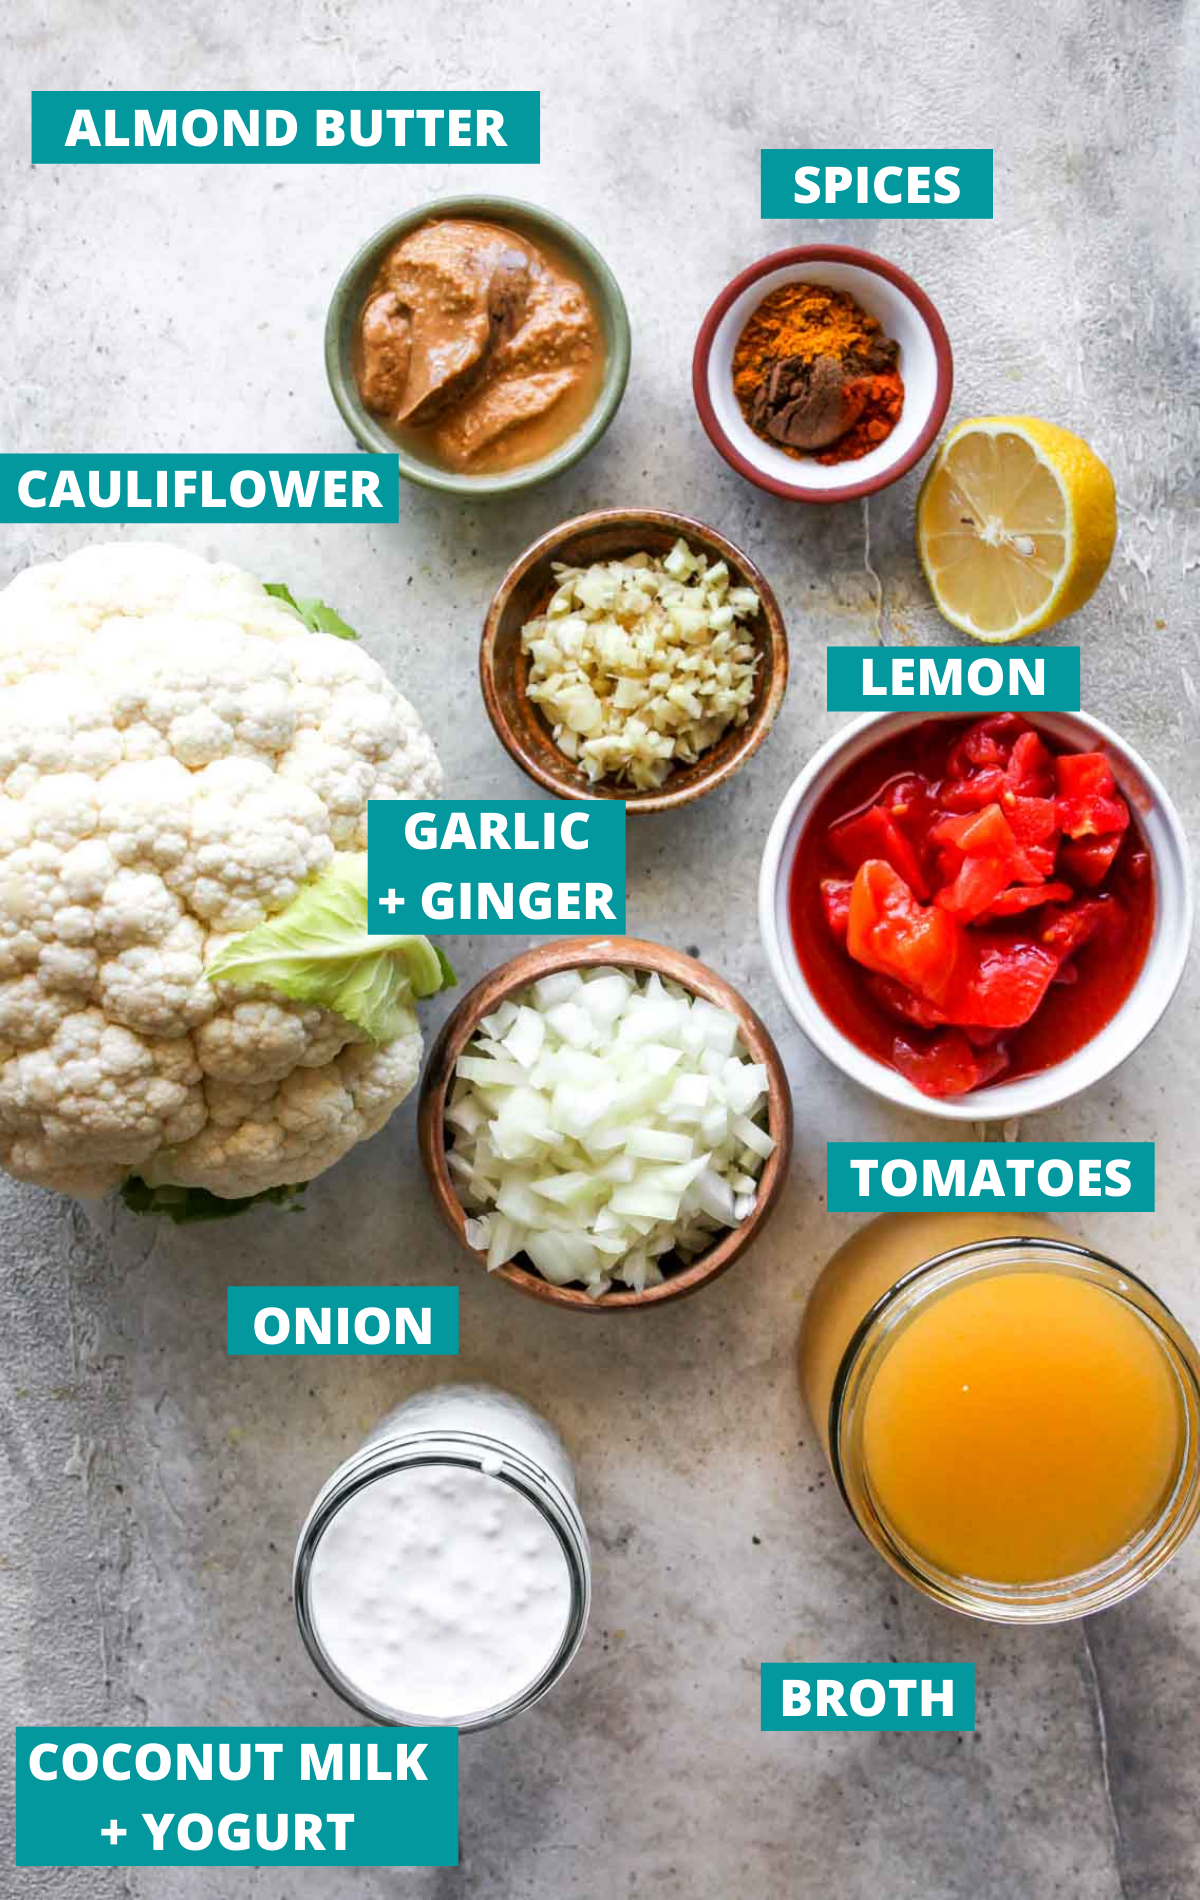 Cauliflower korma ingredients in separate bowls with blue labels